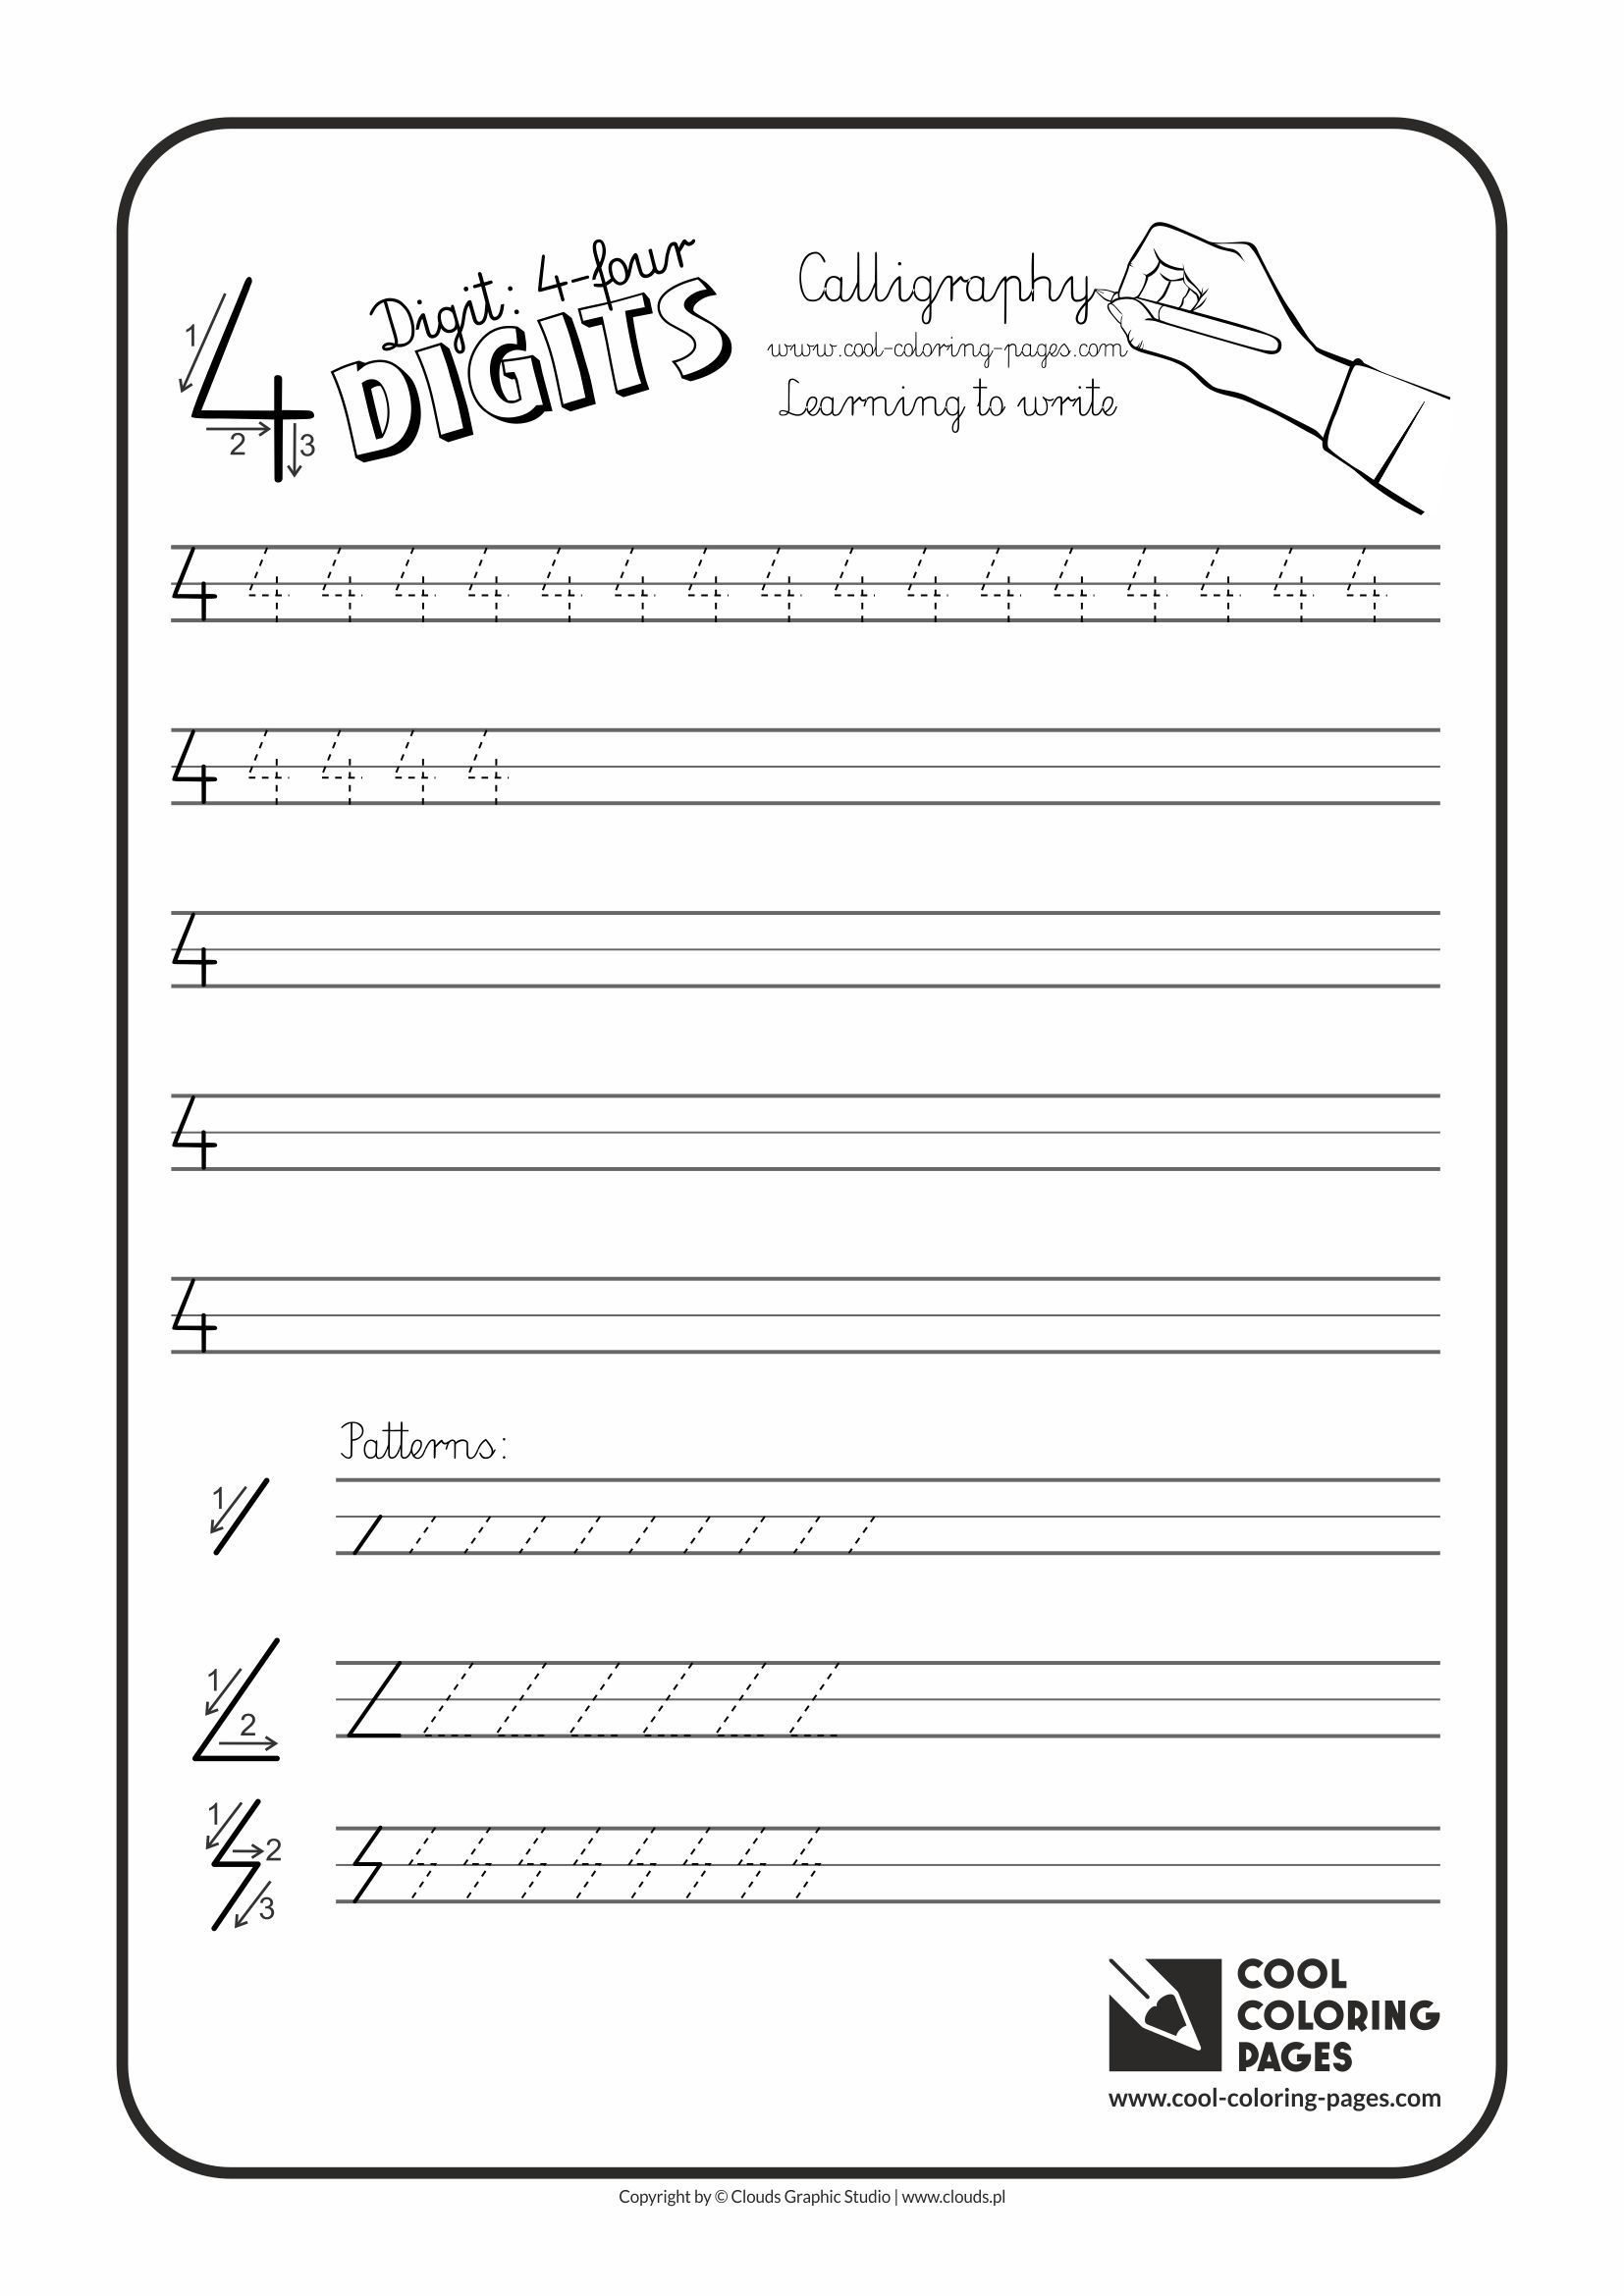 Cool Coloring Pages / Calligraphy / Digit 4 / Handwriting for kids